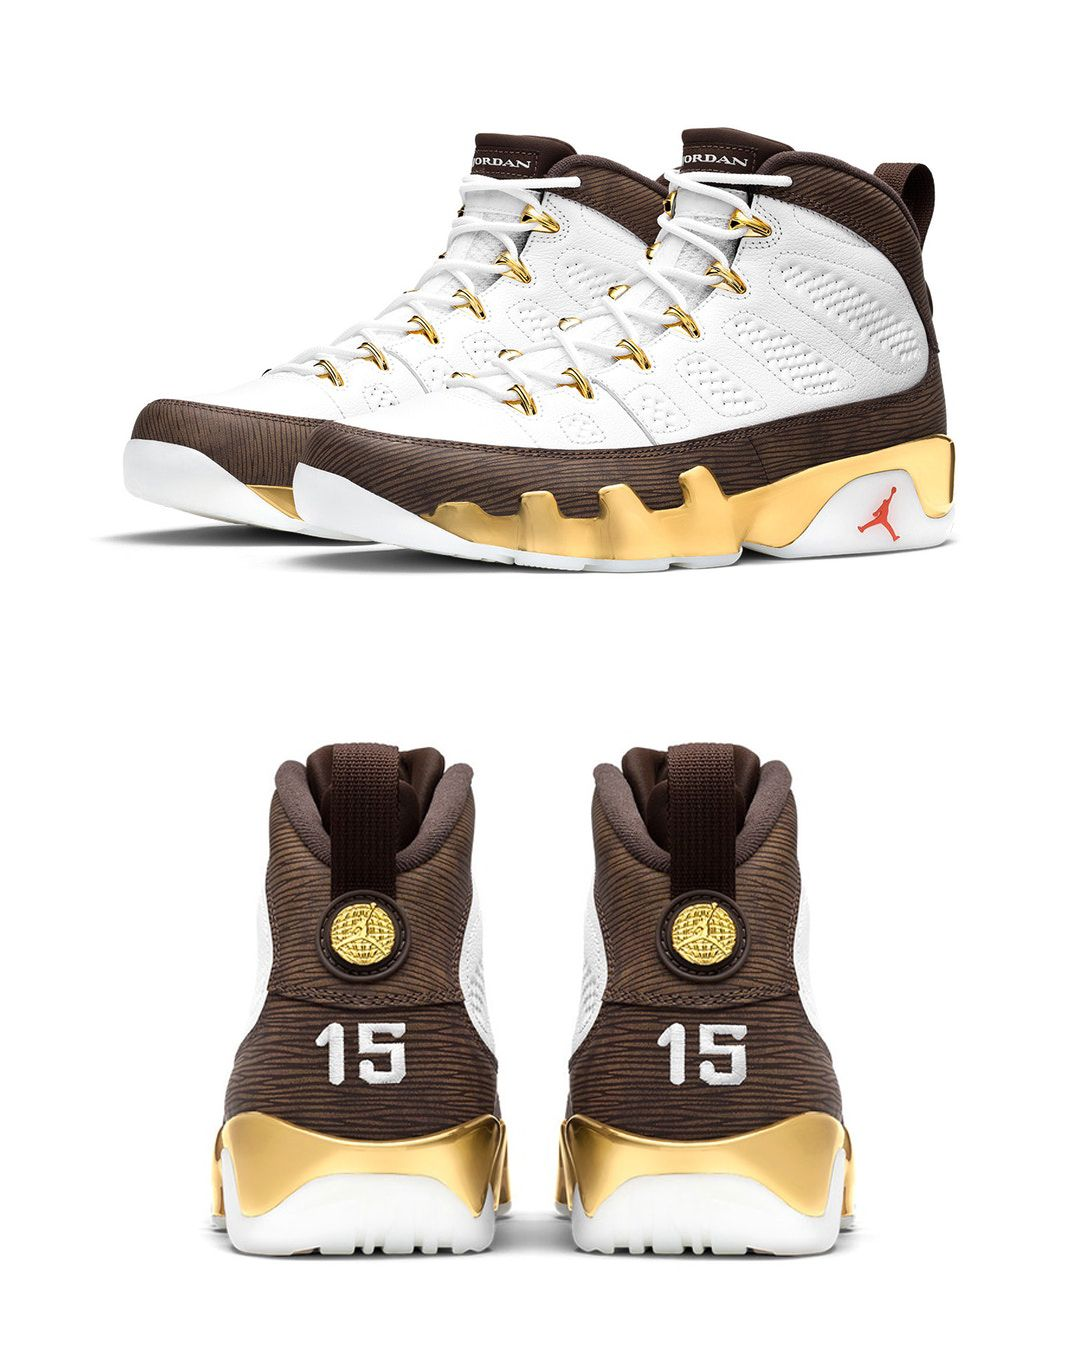 """d5aed5818f51c6 Air Jordan 9 """"Mop Melo"""" Honors Carmelo Anthony s 2003 Championship at  Syracuse"""